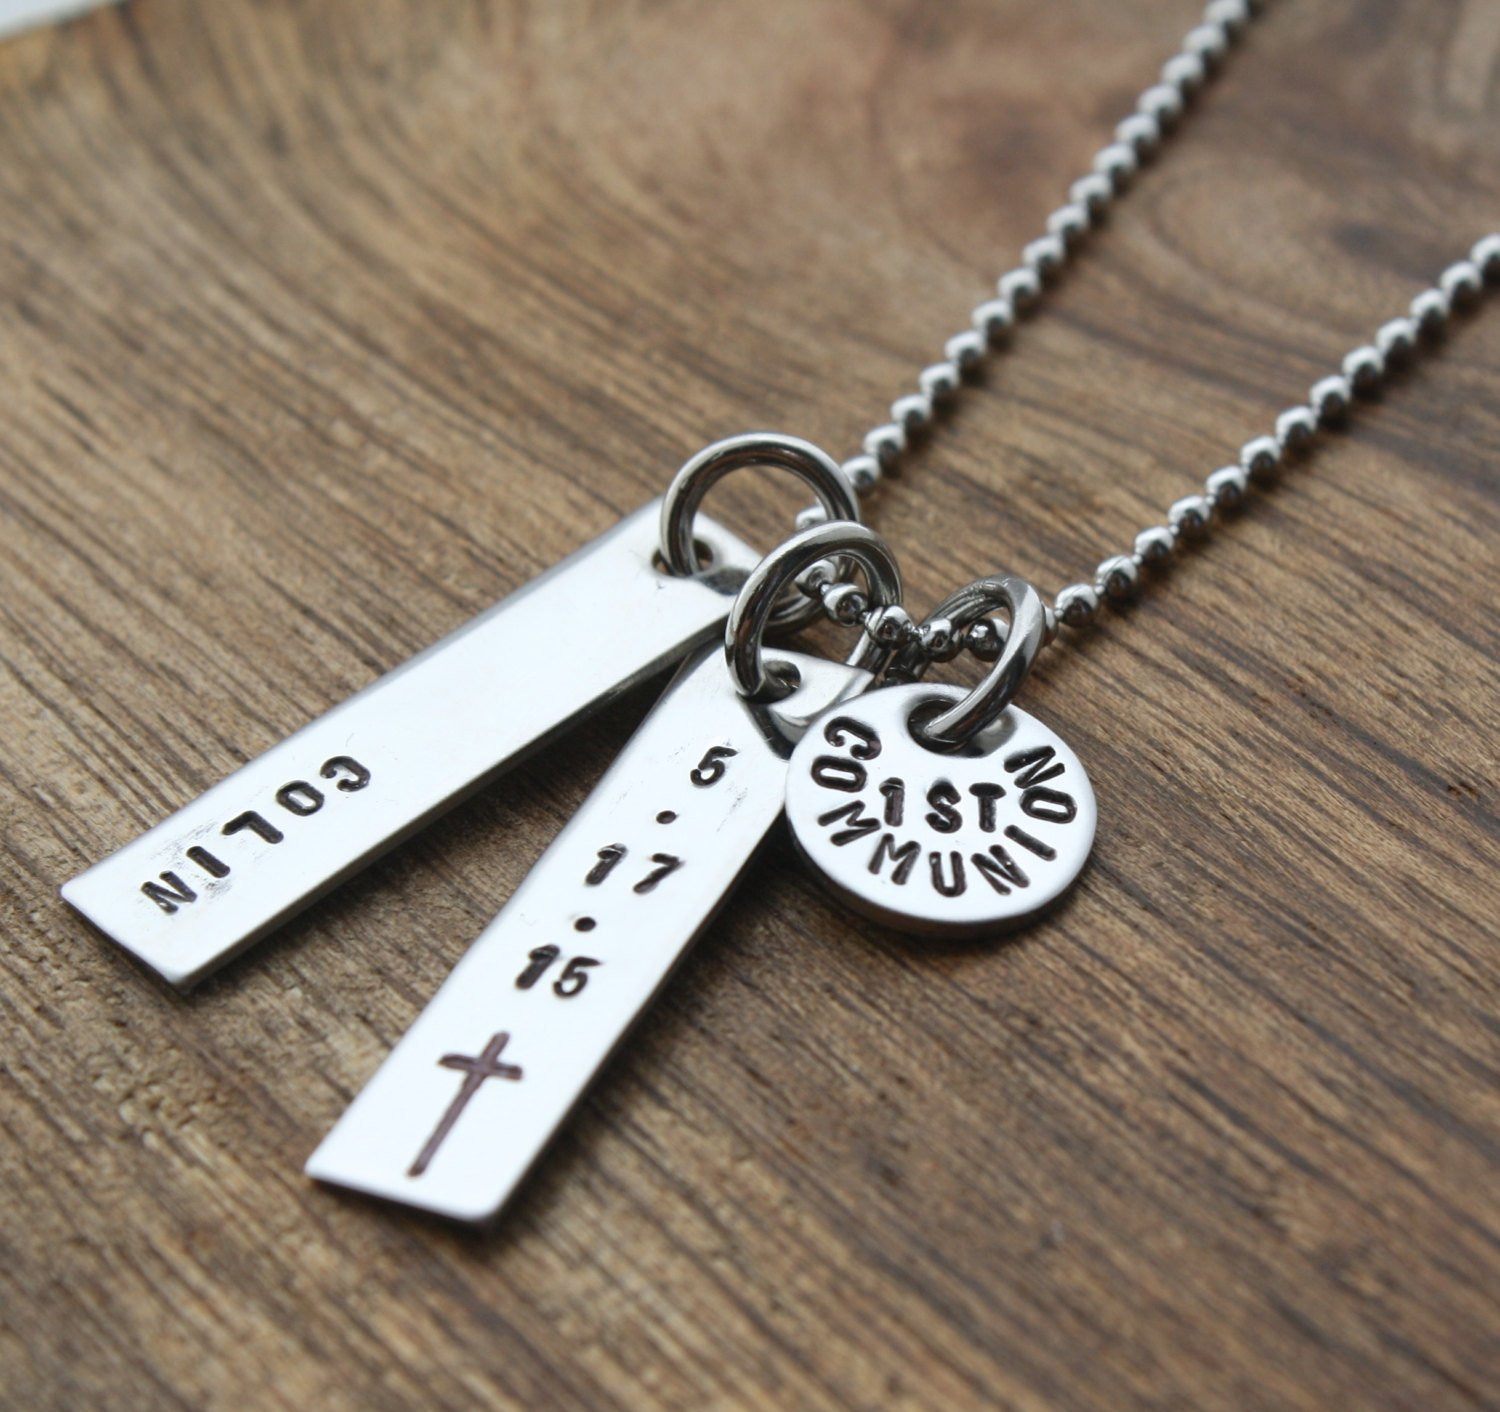 First Communion Gift Ideas For Boys  Boys First munion Necklace For Boy by sierrametaldesign